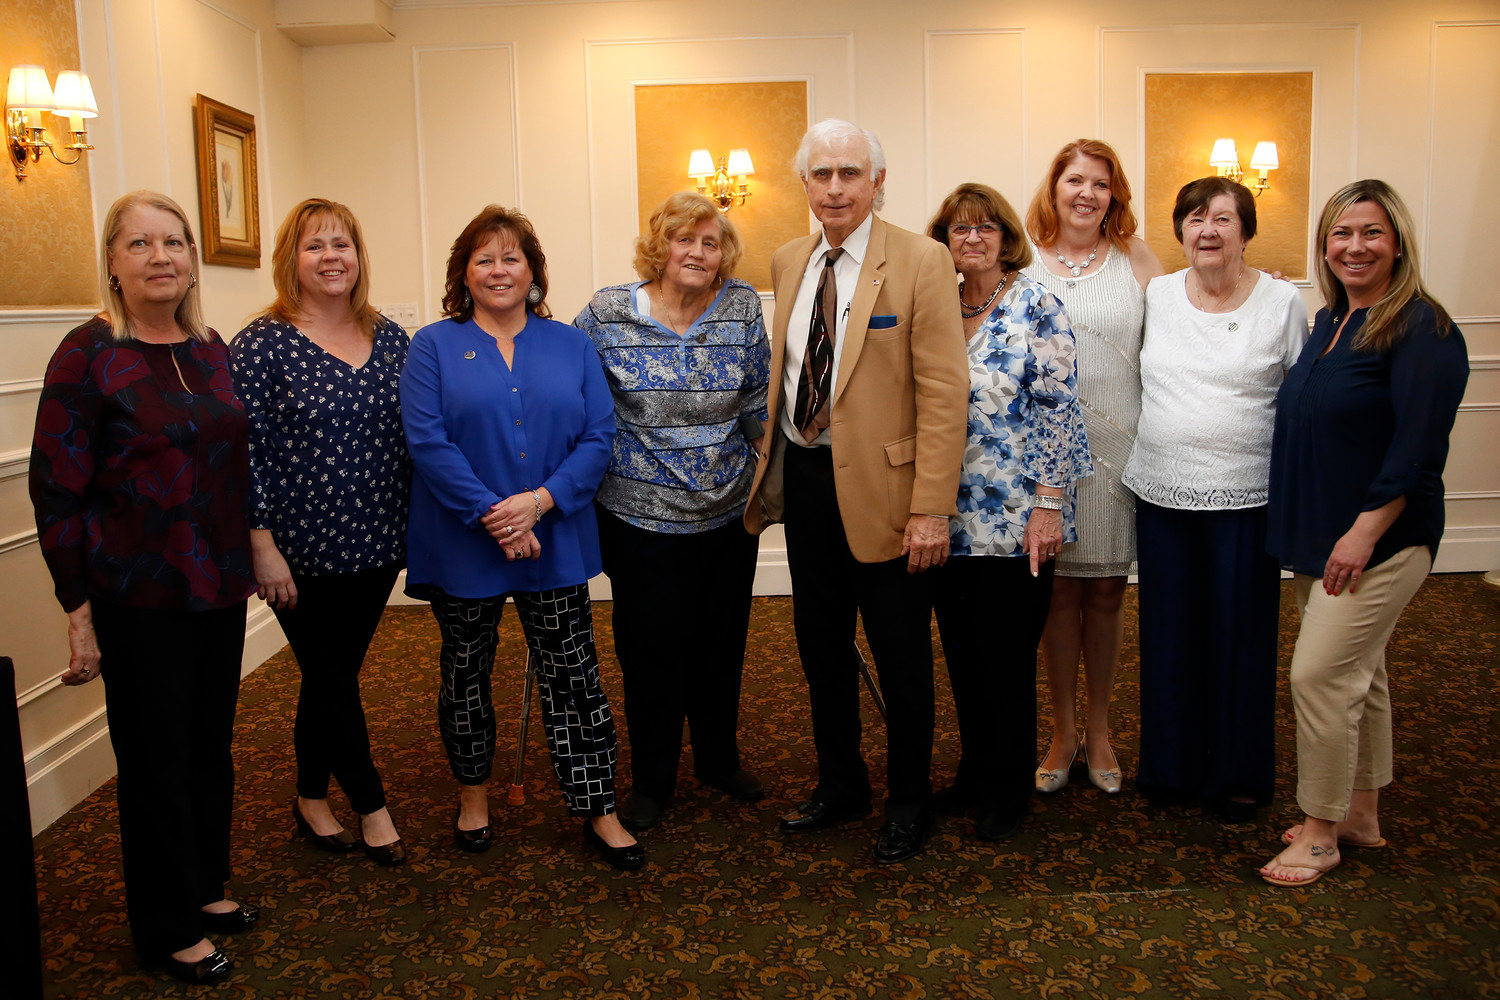 Honoree Don Maresca with Kiwanettes Officers Ellen Sullivan, Linda Ohlsen, Terri Finneran, Dolores Buckley, Linda Angelastro (President), Maureen Gerardi, Georgianna Miller and Alyssa Mancuso.